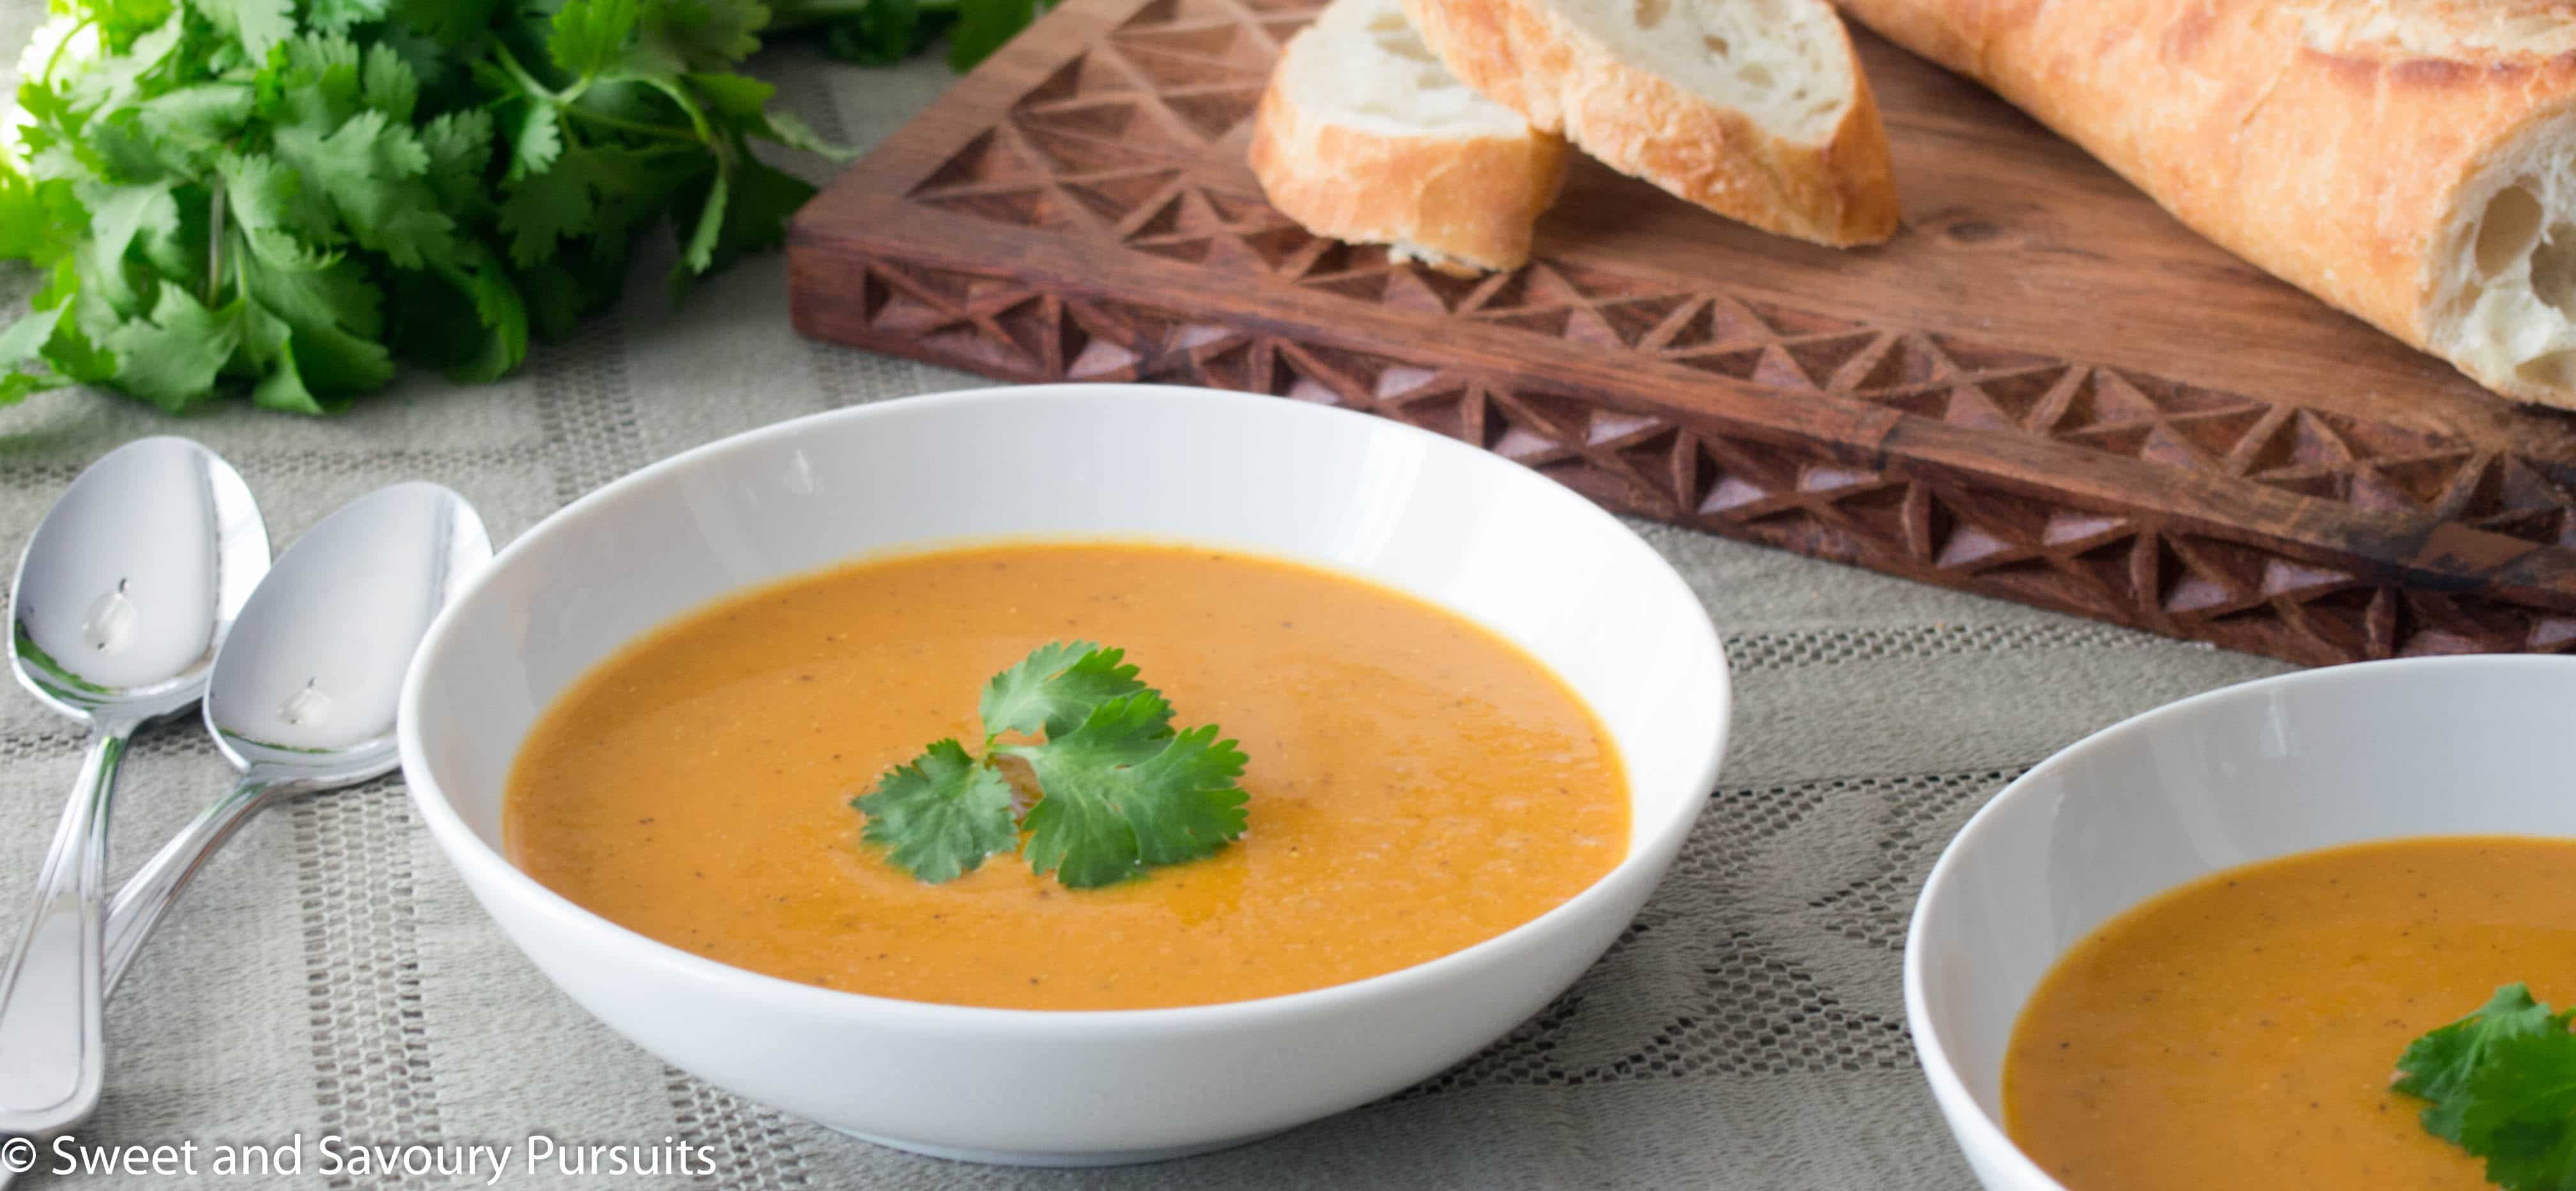 Puréed Red Lentil and Cauliflower Soup in two white bowls with bread on the side.